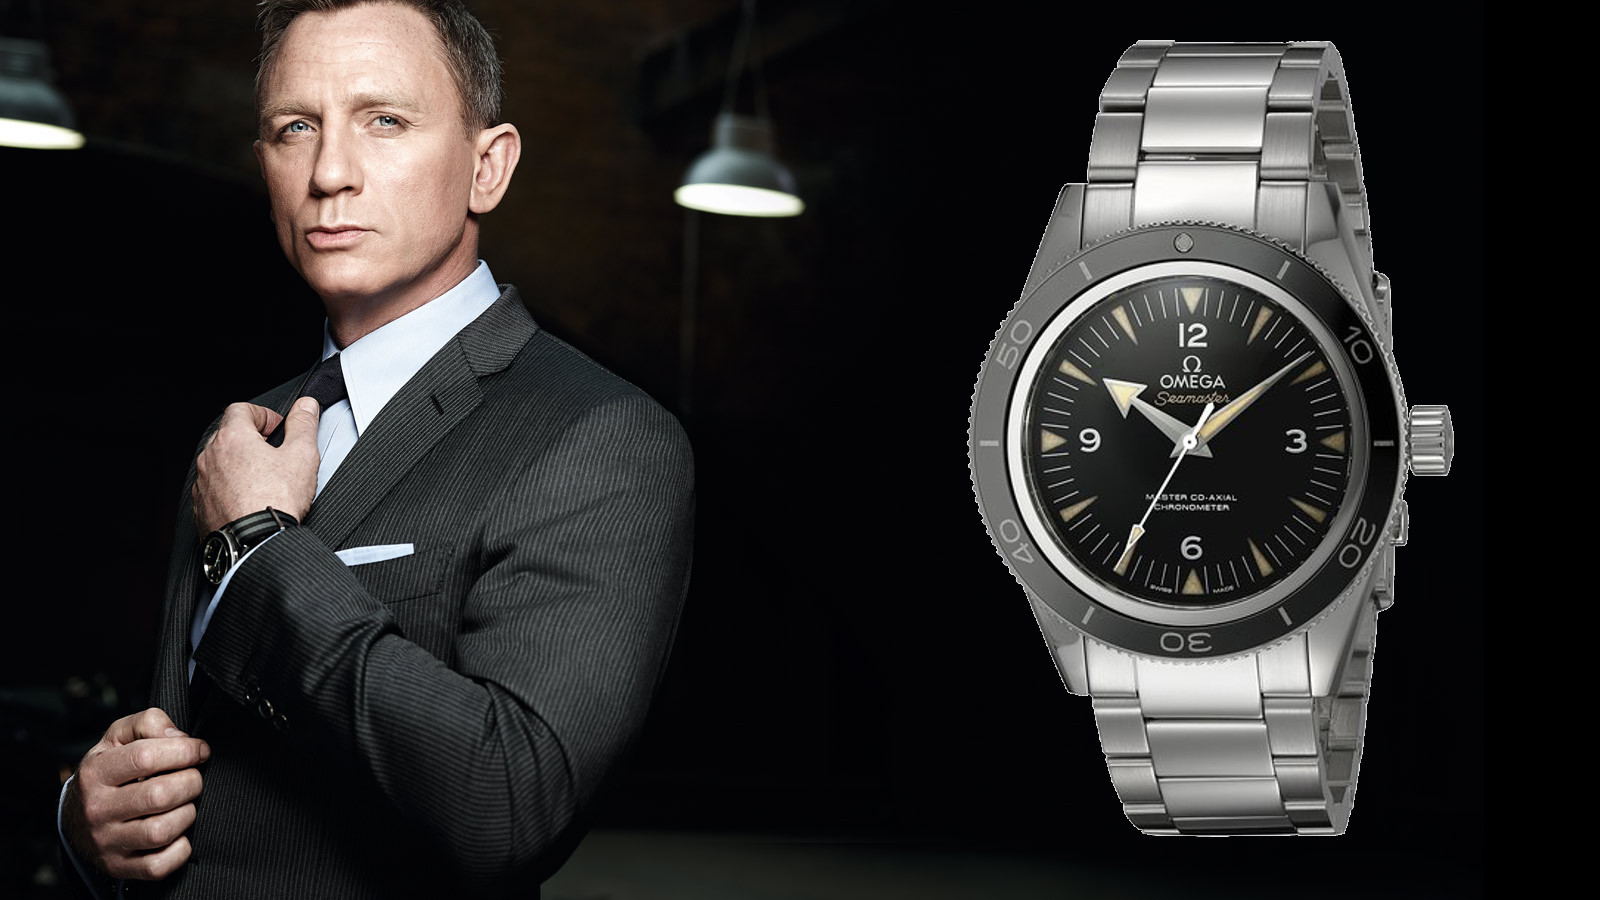 spectre-james-bond-omega-watch-with-nato-band1.jpg